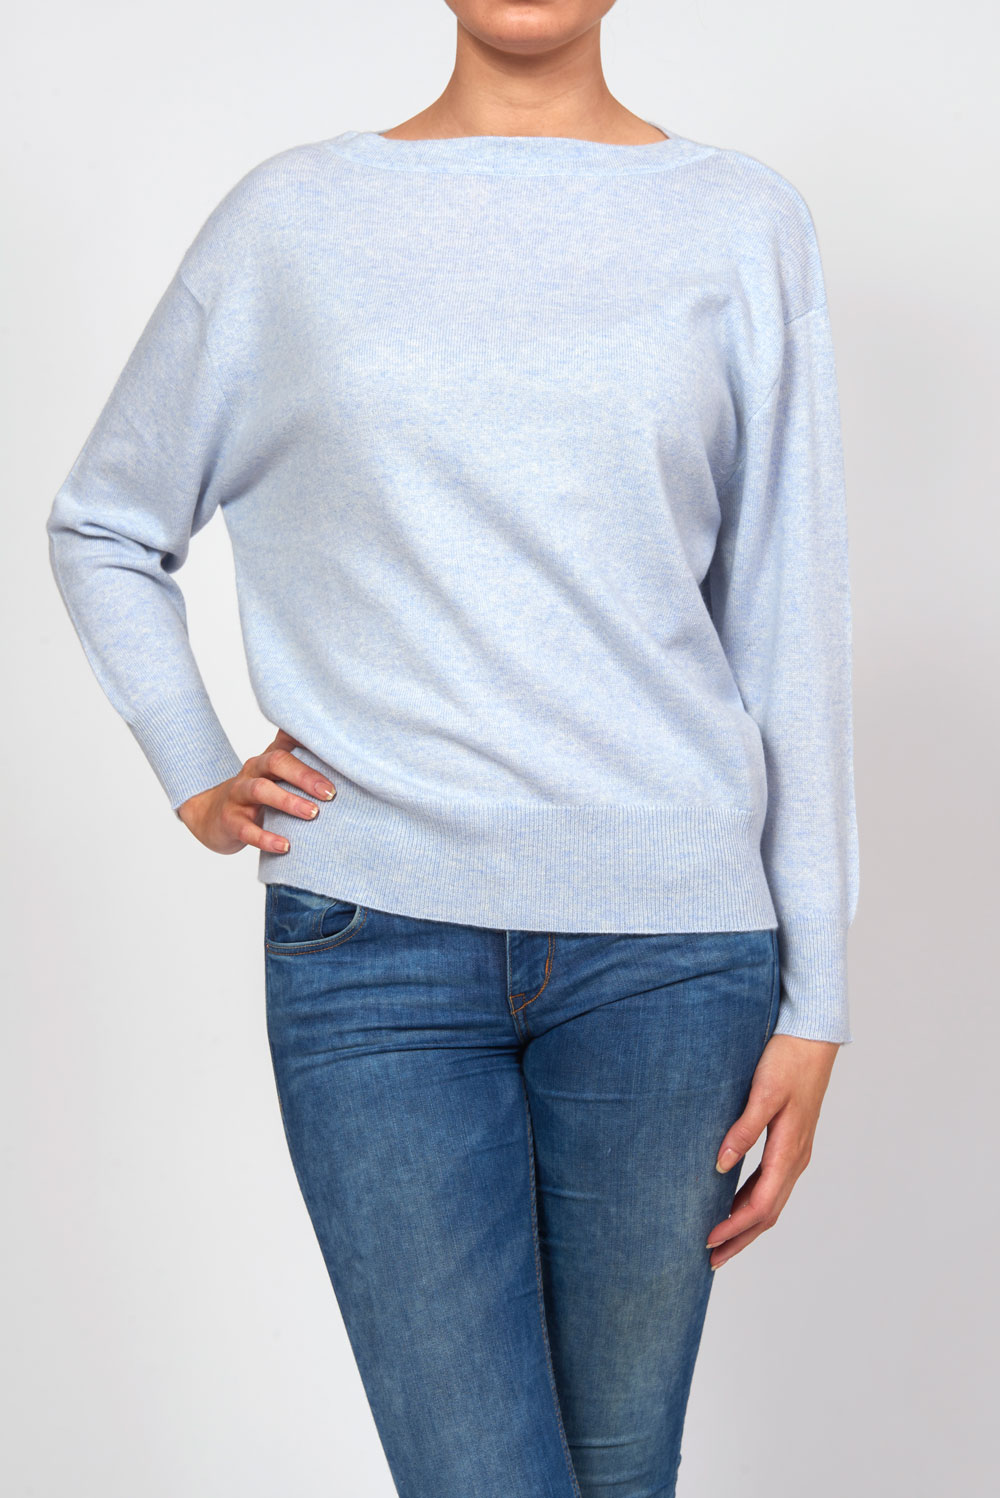 BoatneckSweater_LightBlue_Front